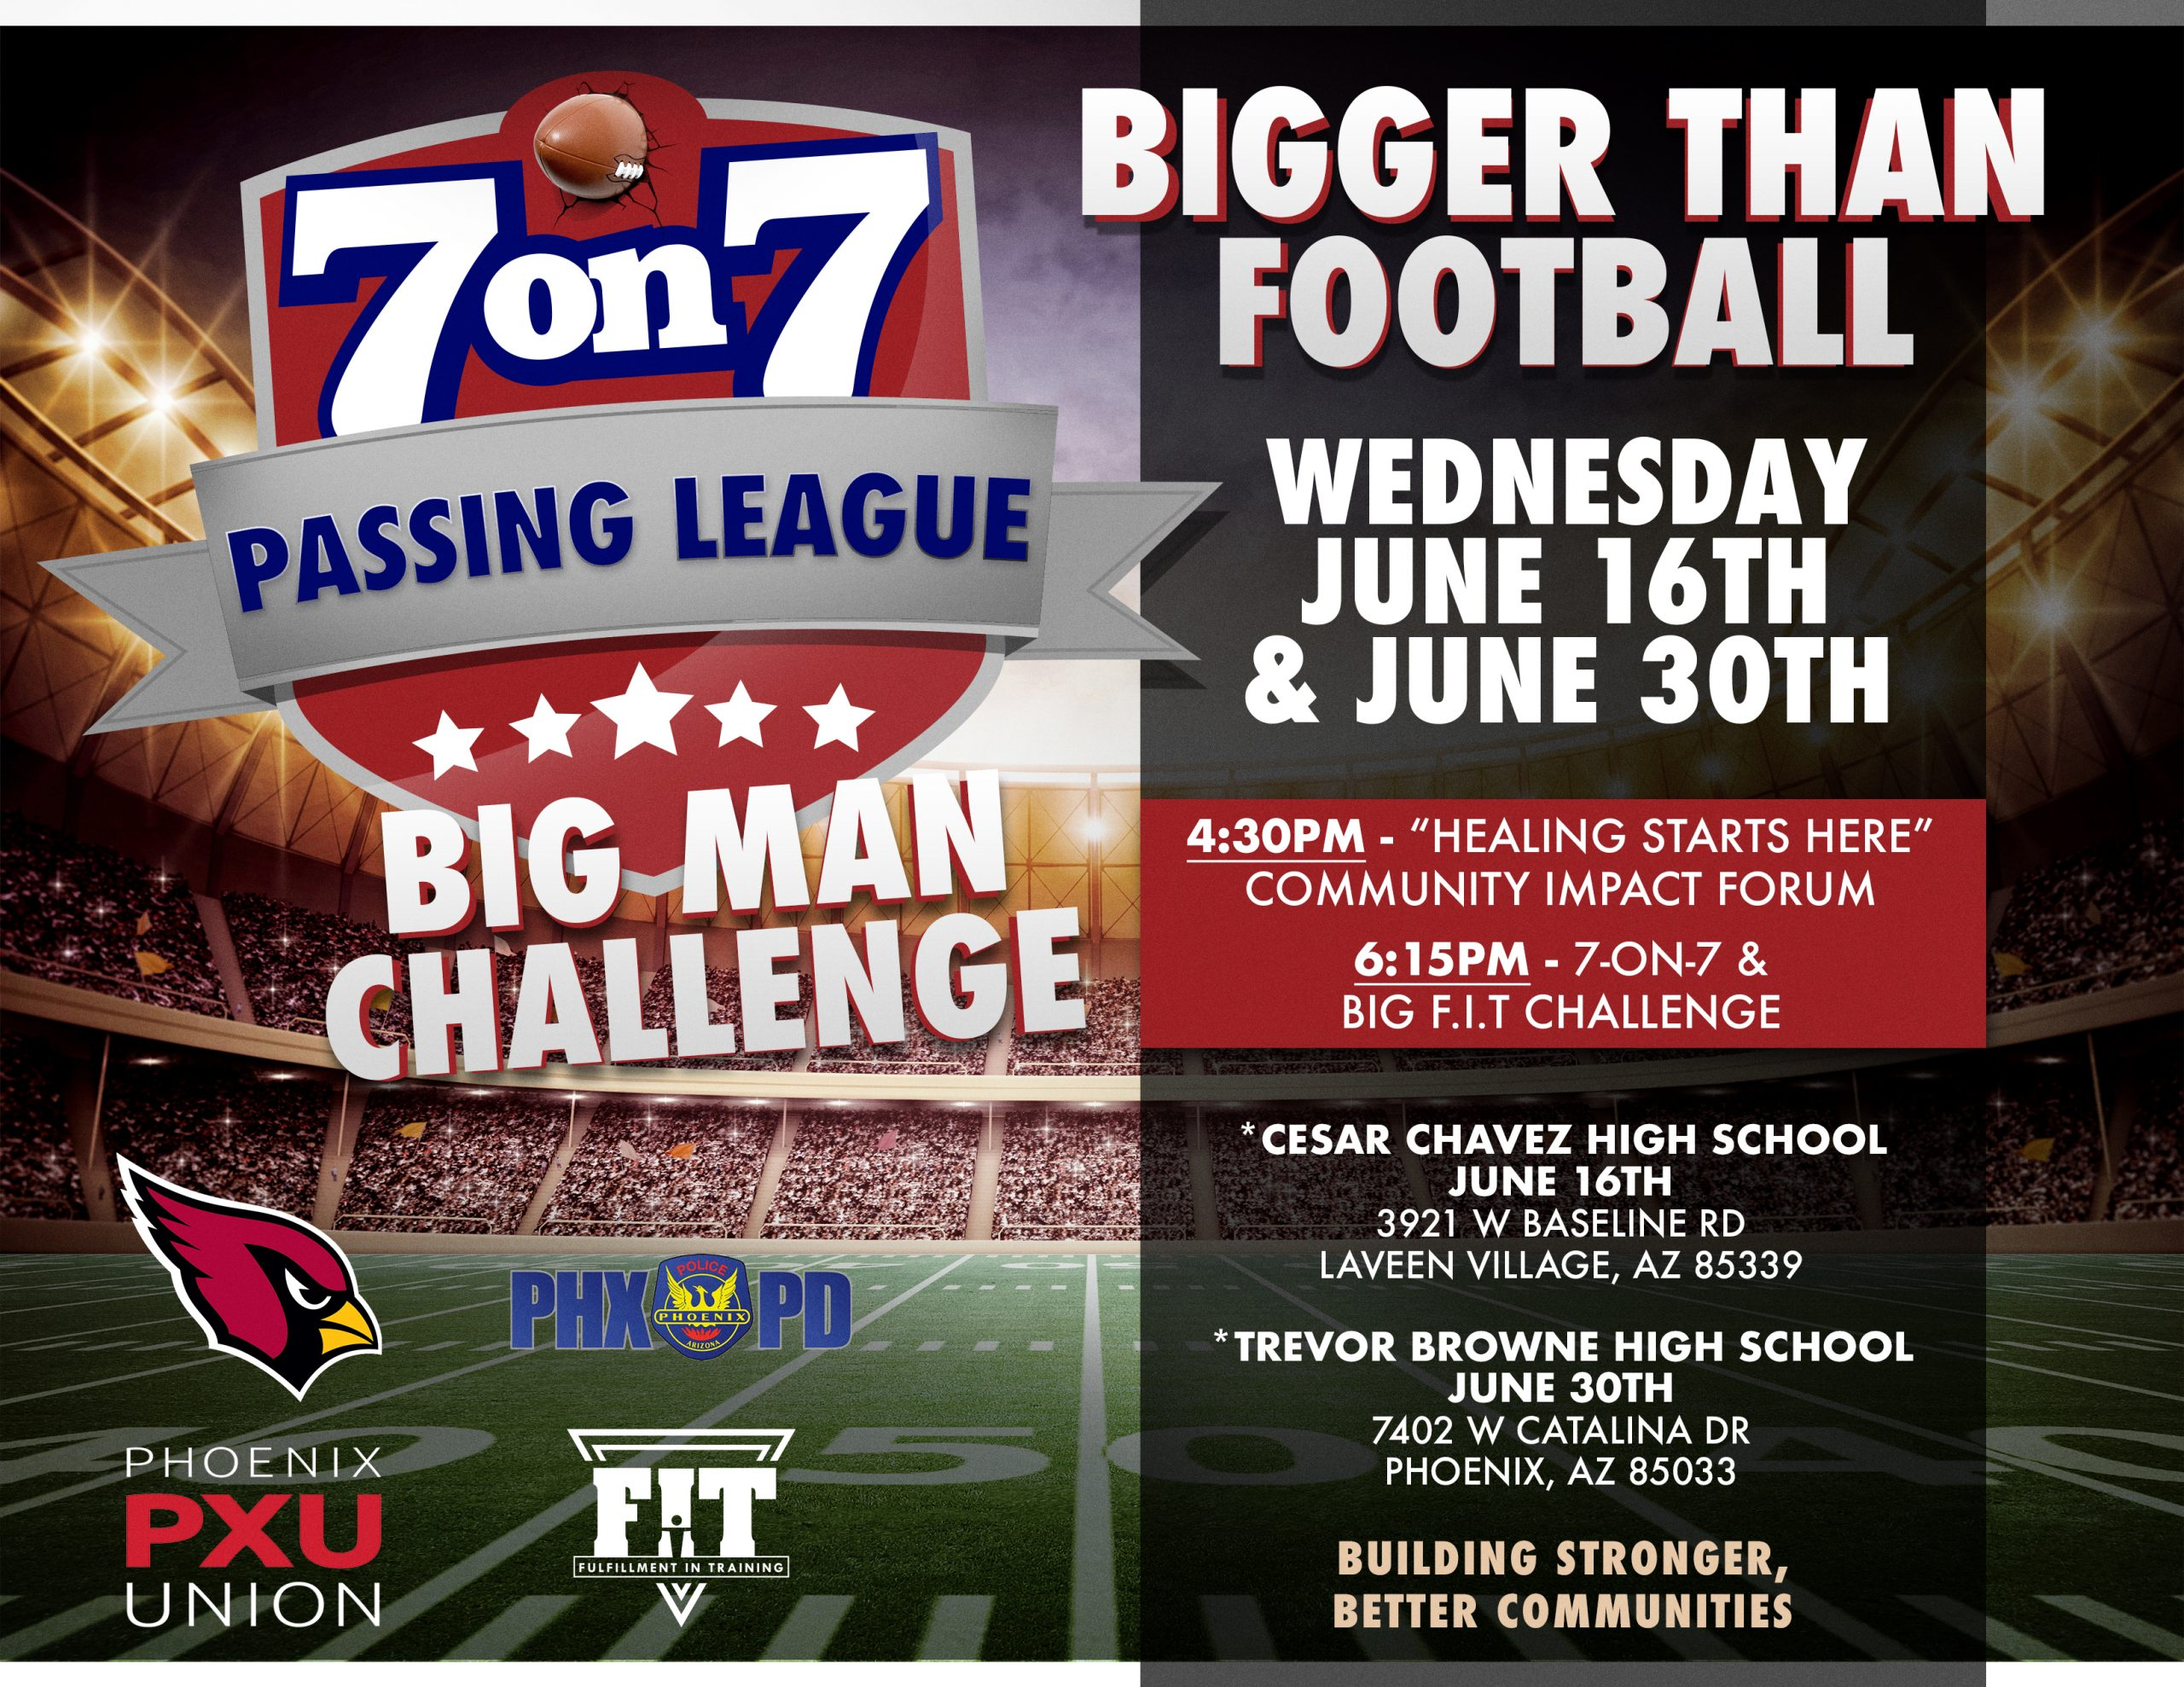 7 on 7 Passing League